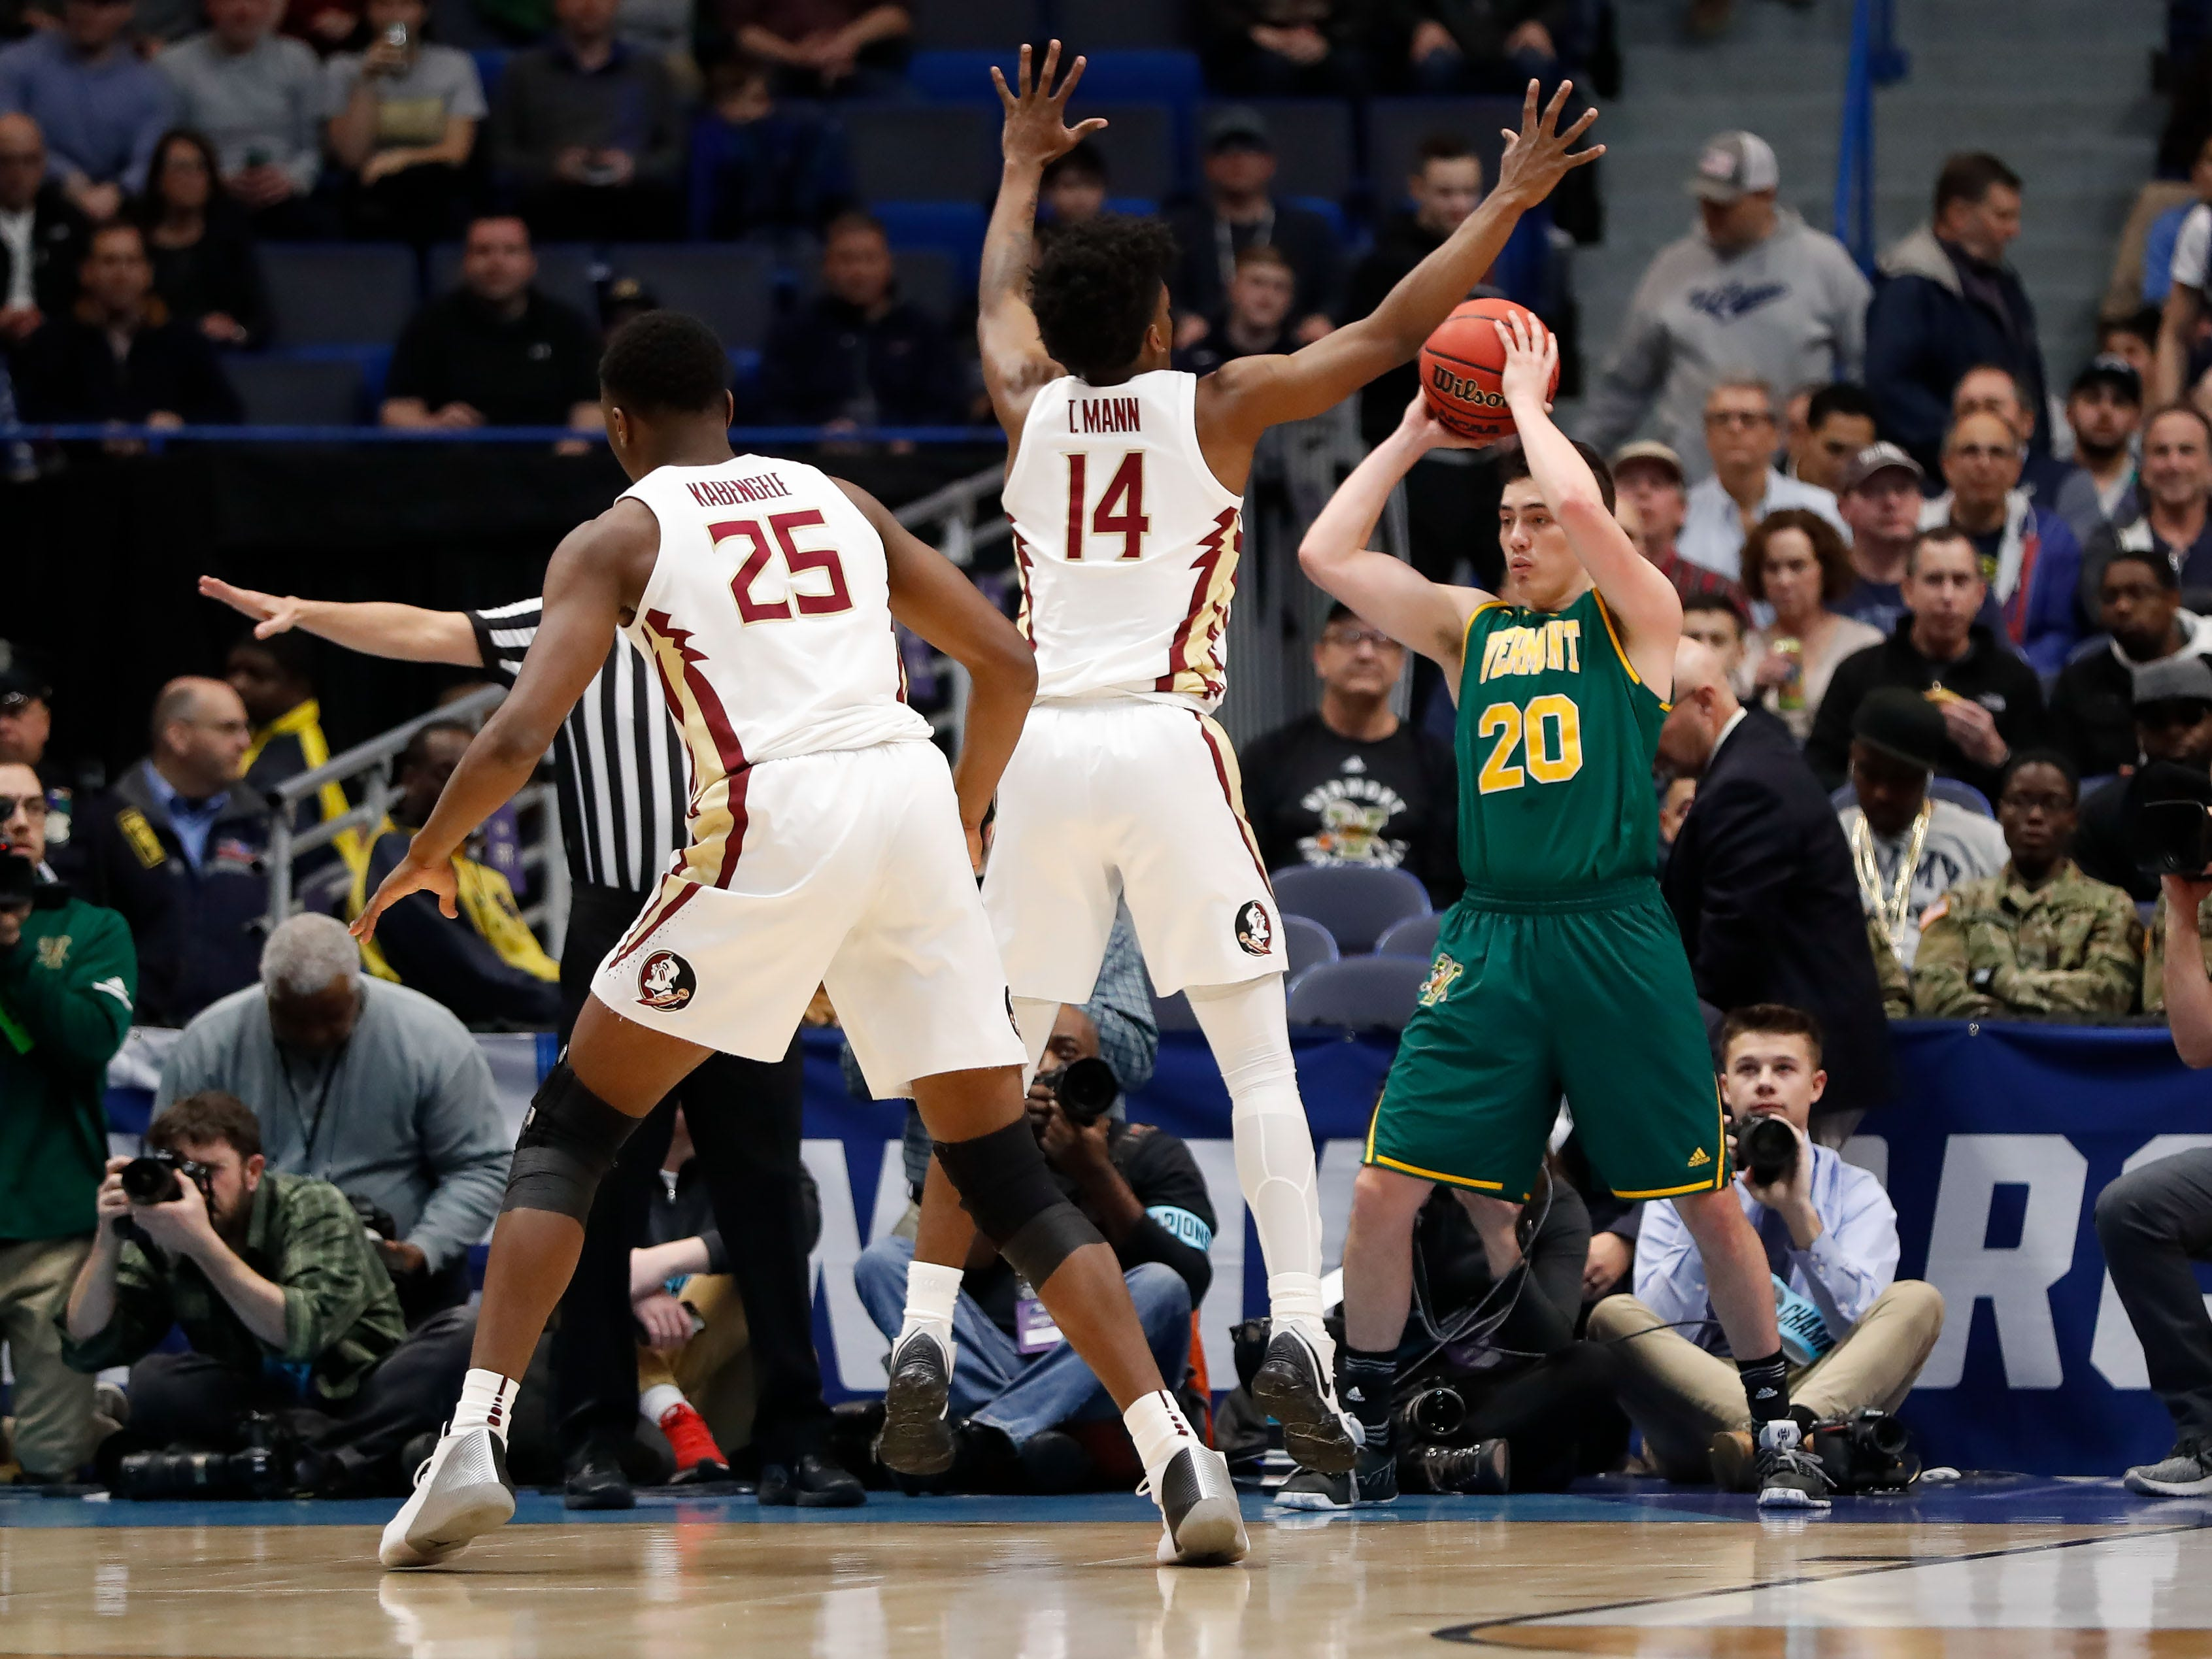 Mar 21, 2019; Hartford, CT, USA; Vermont Catamounts guard Ernie Duncan (20) looks to pass the ball around Florida State Seminoles guard Terance Mann (14) during the first half of a game in the first round of the 2019 NCAA Tournament at XL Center. Mandatory Credit: David Butler II-USA TODAY Sports